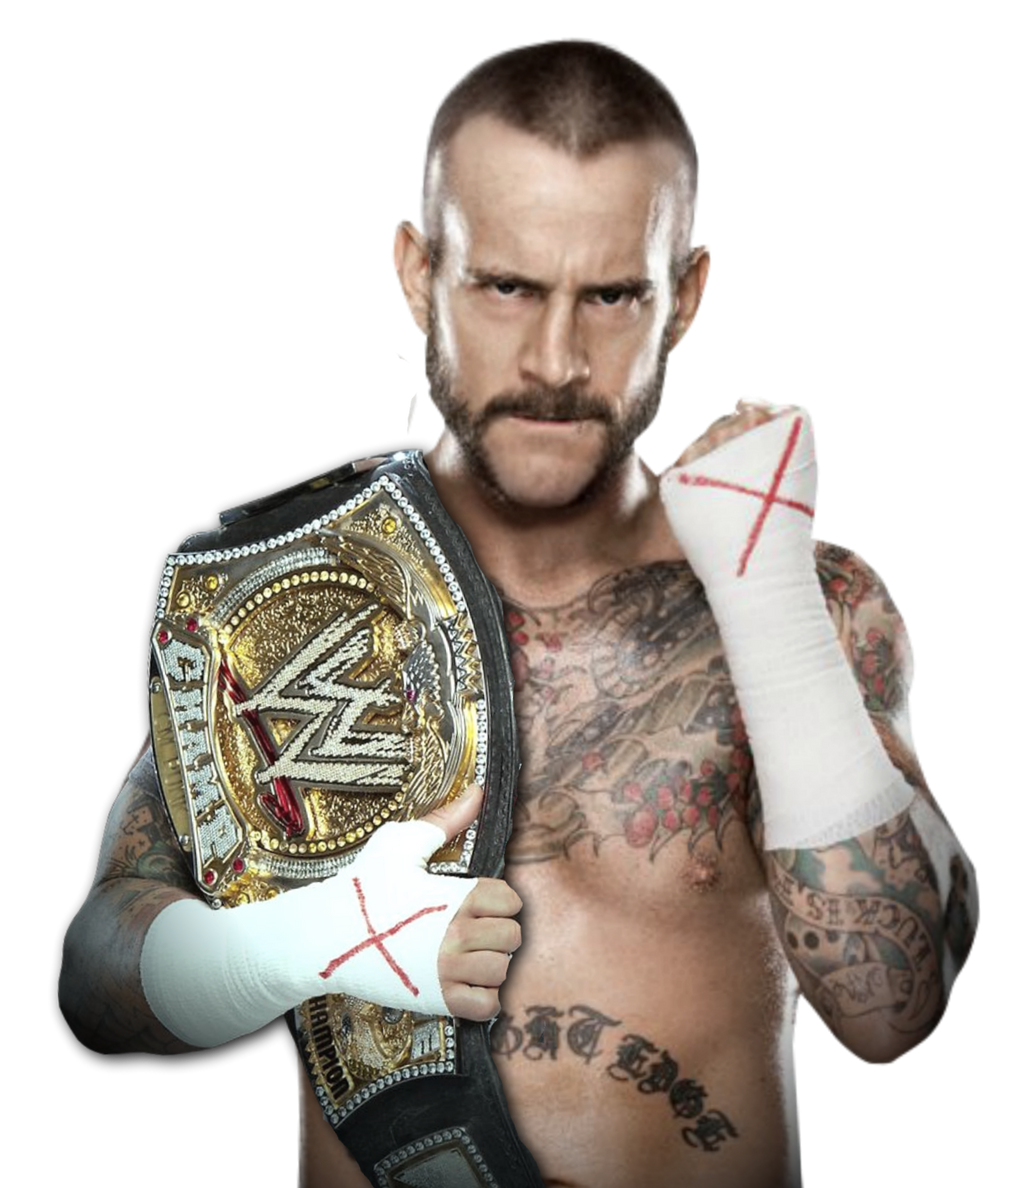 cm punk wwe champion 2012 by lunaticdesigner on deviantart. Black Bedroom Furniture Sets. Home Design Ideas